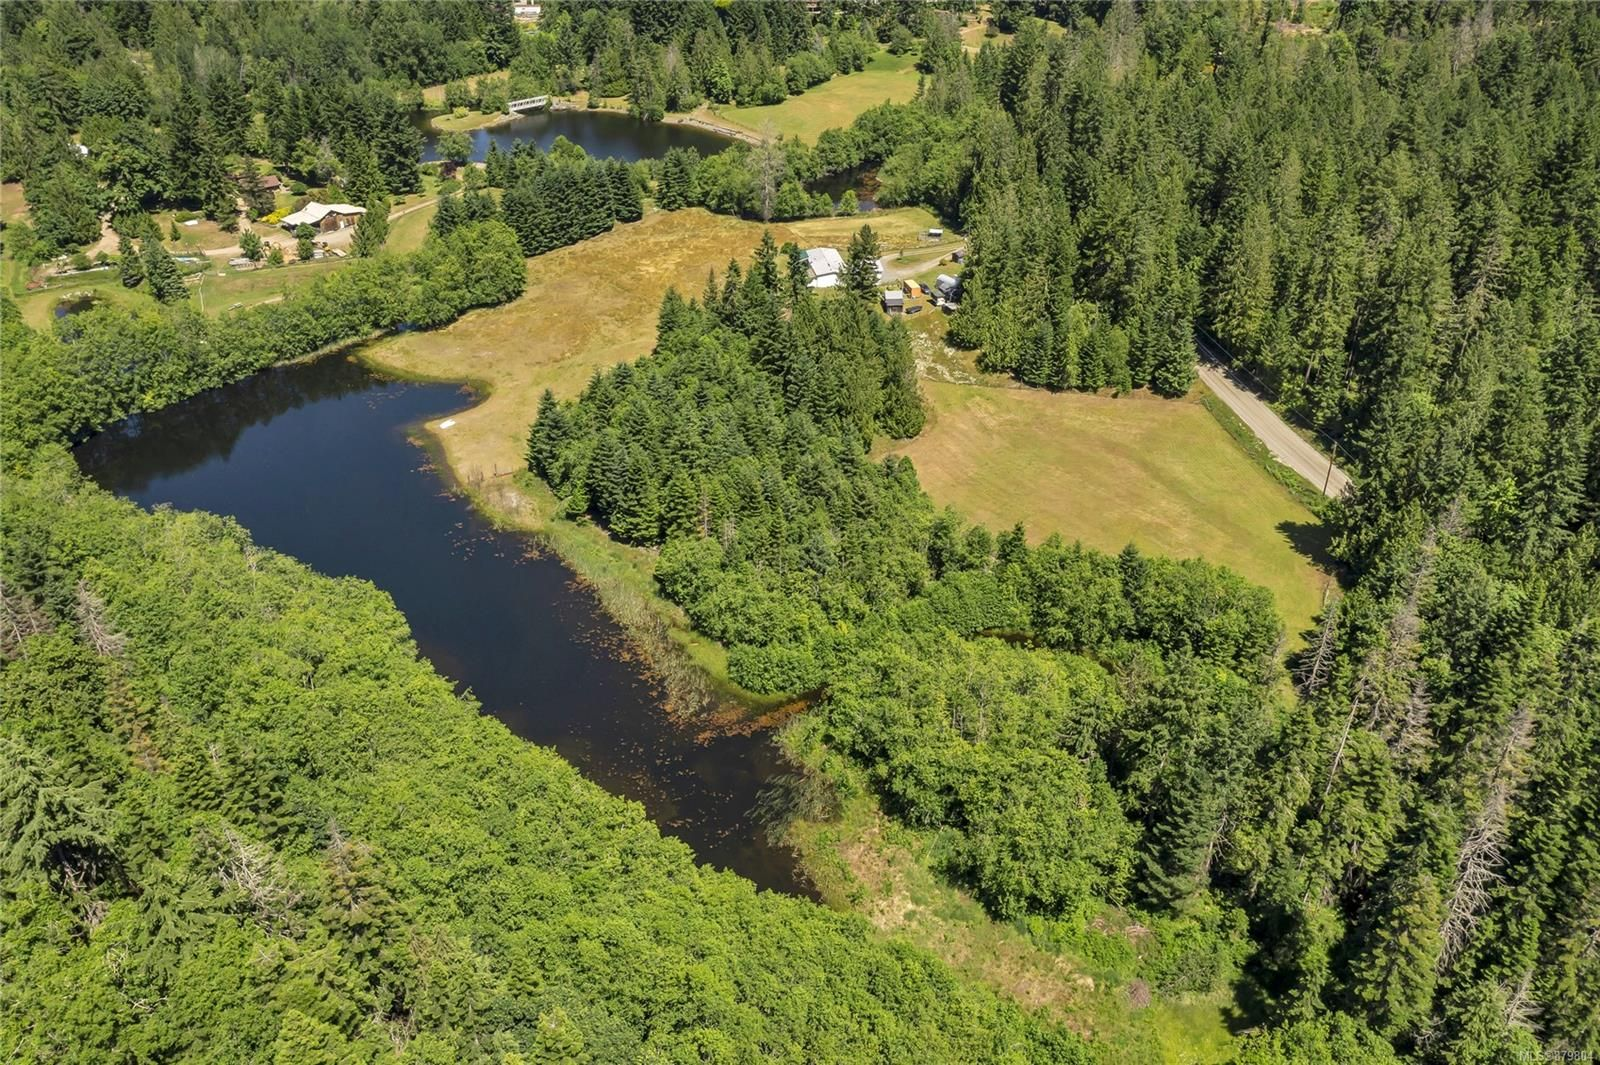 Photo 40: Photos: 3596 Riverside Rd in : ML Cobble Hill Manufactured Home for sale (Malahat & Area)  : MLS®# 879804